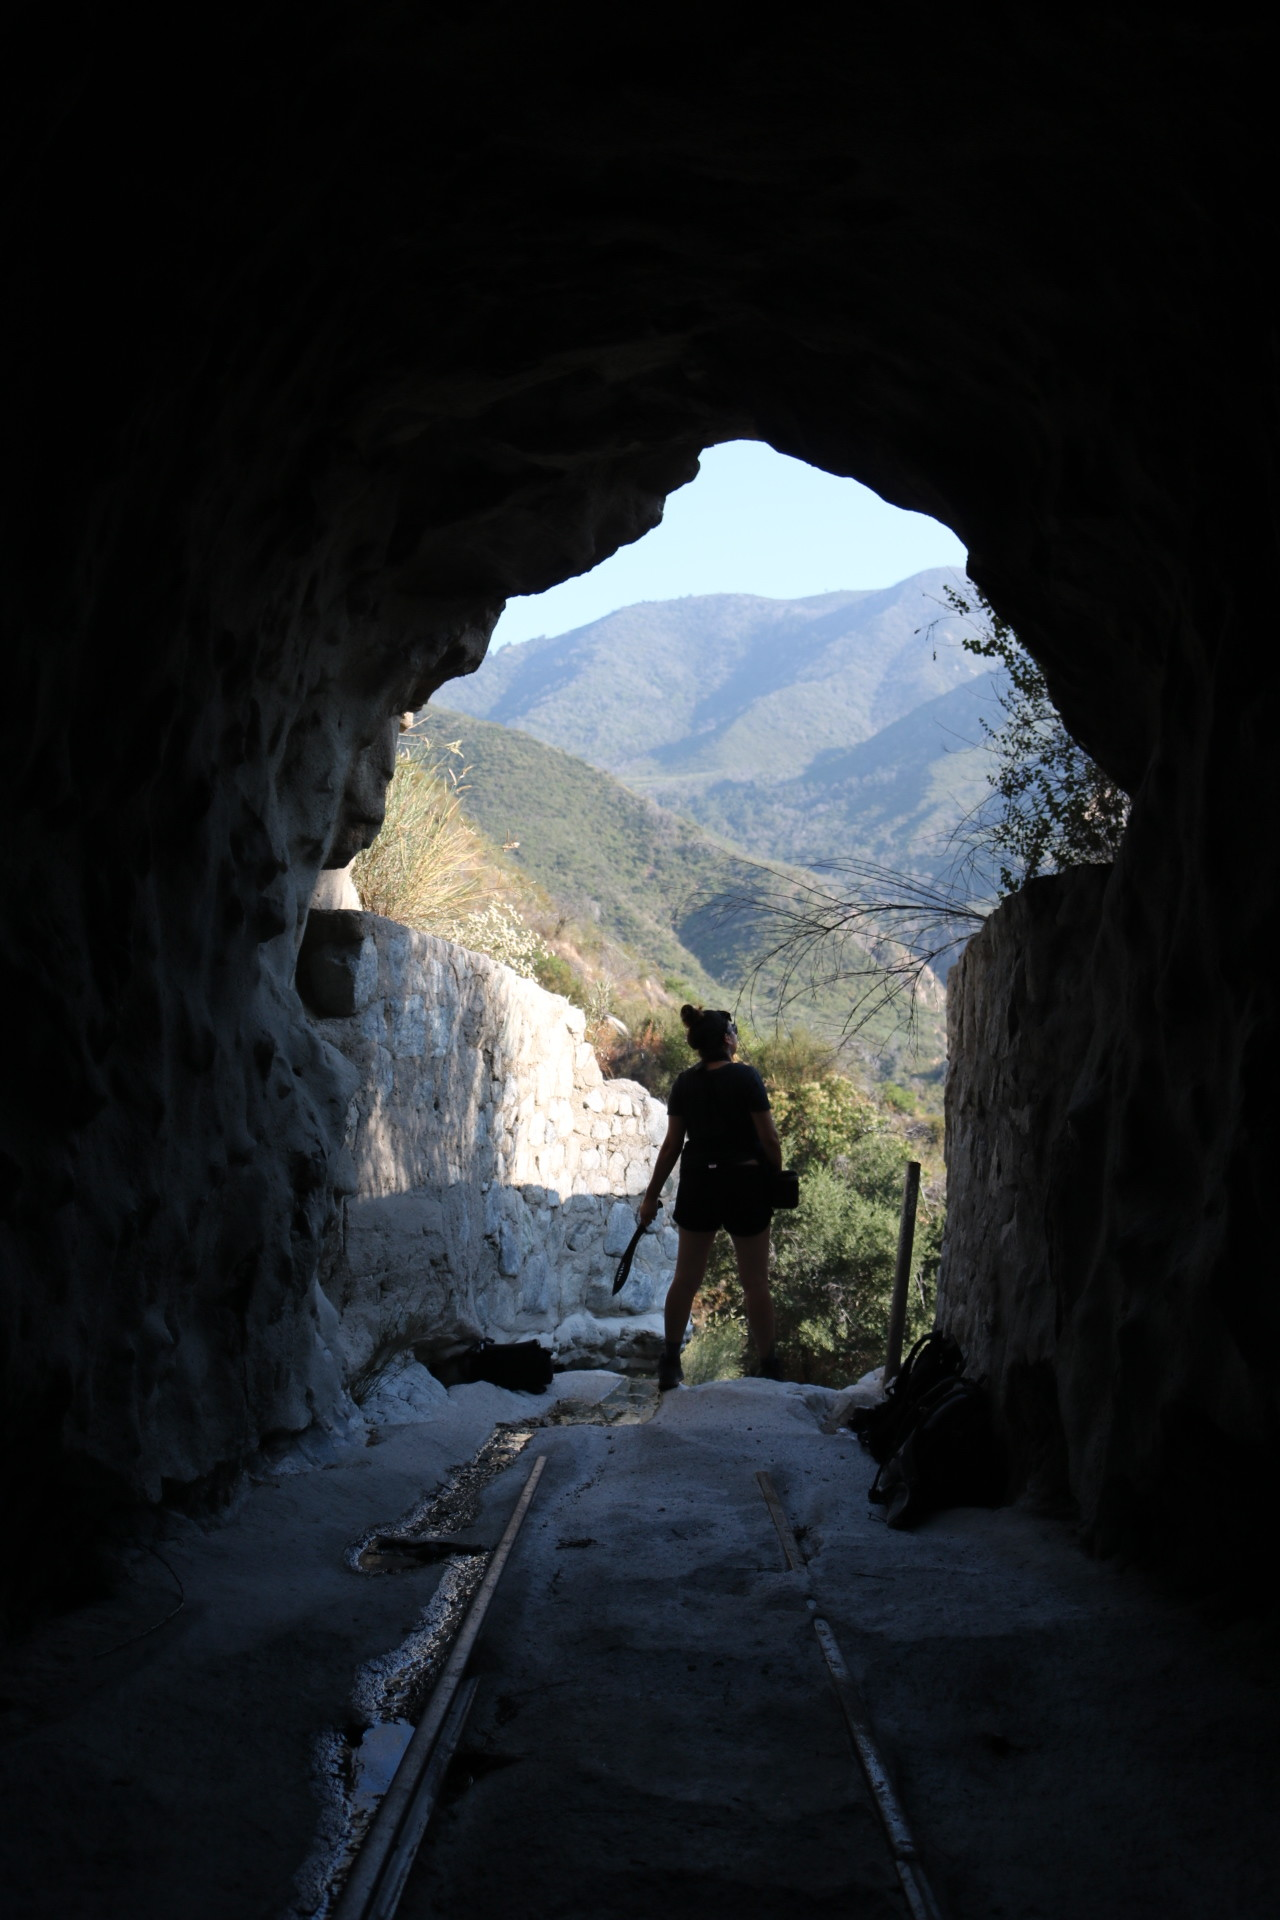 Big Tujunga Water Tunnels